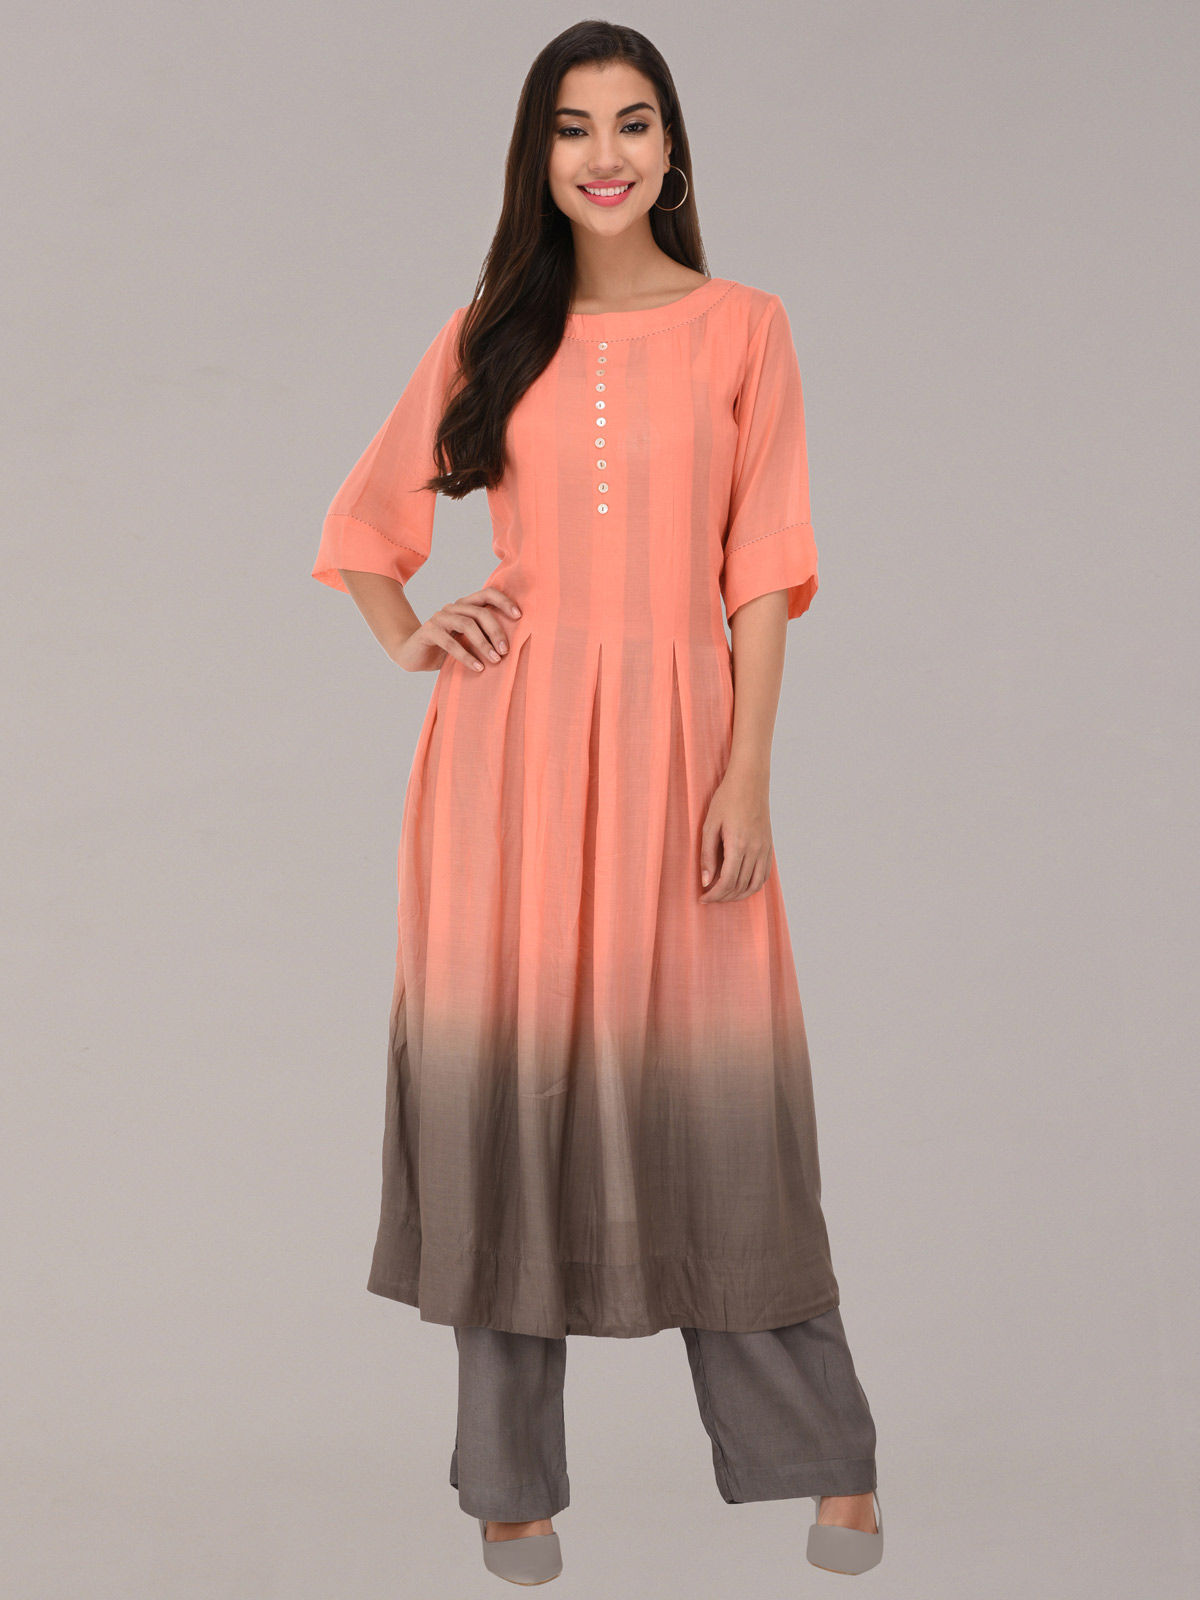 Modal ombre peach & grey tunic with bottom